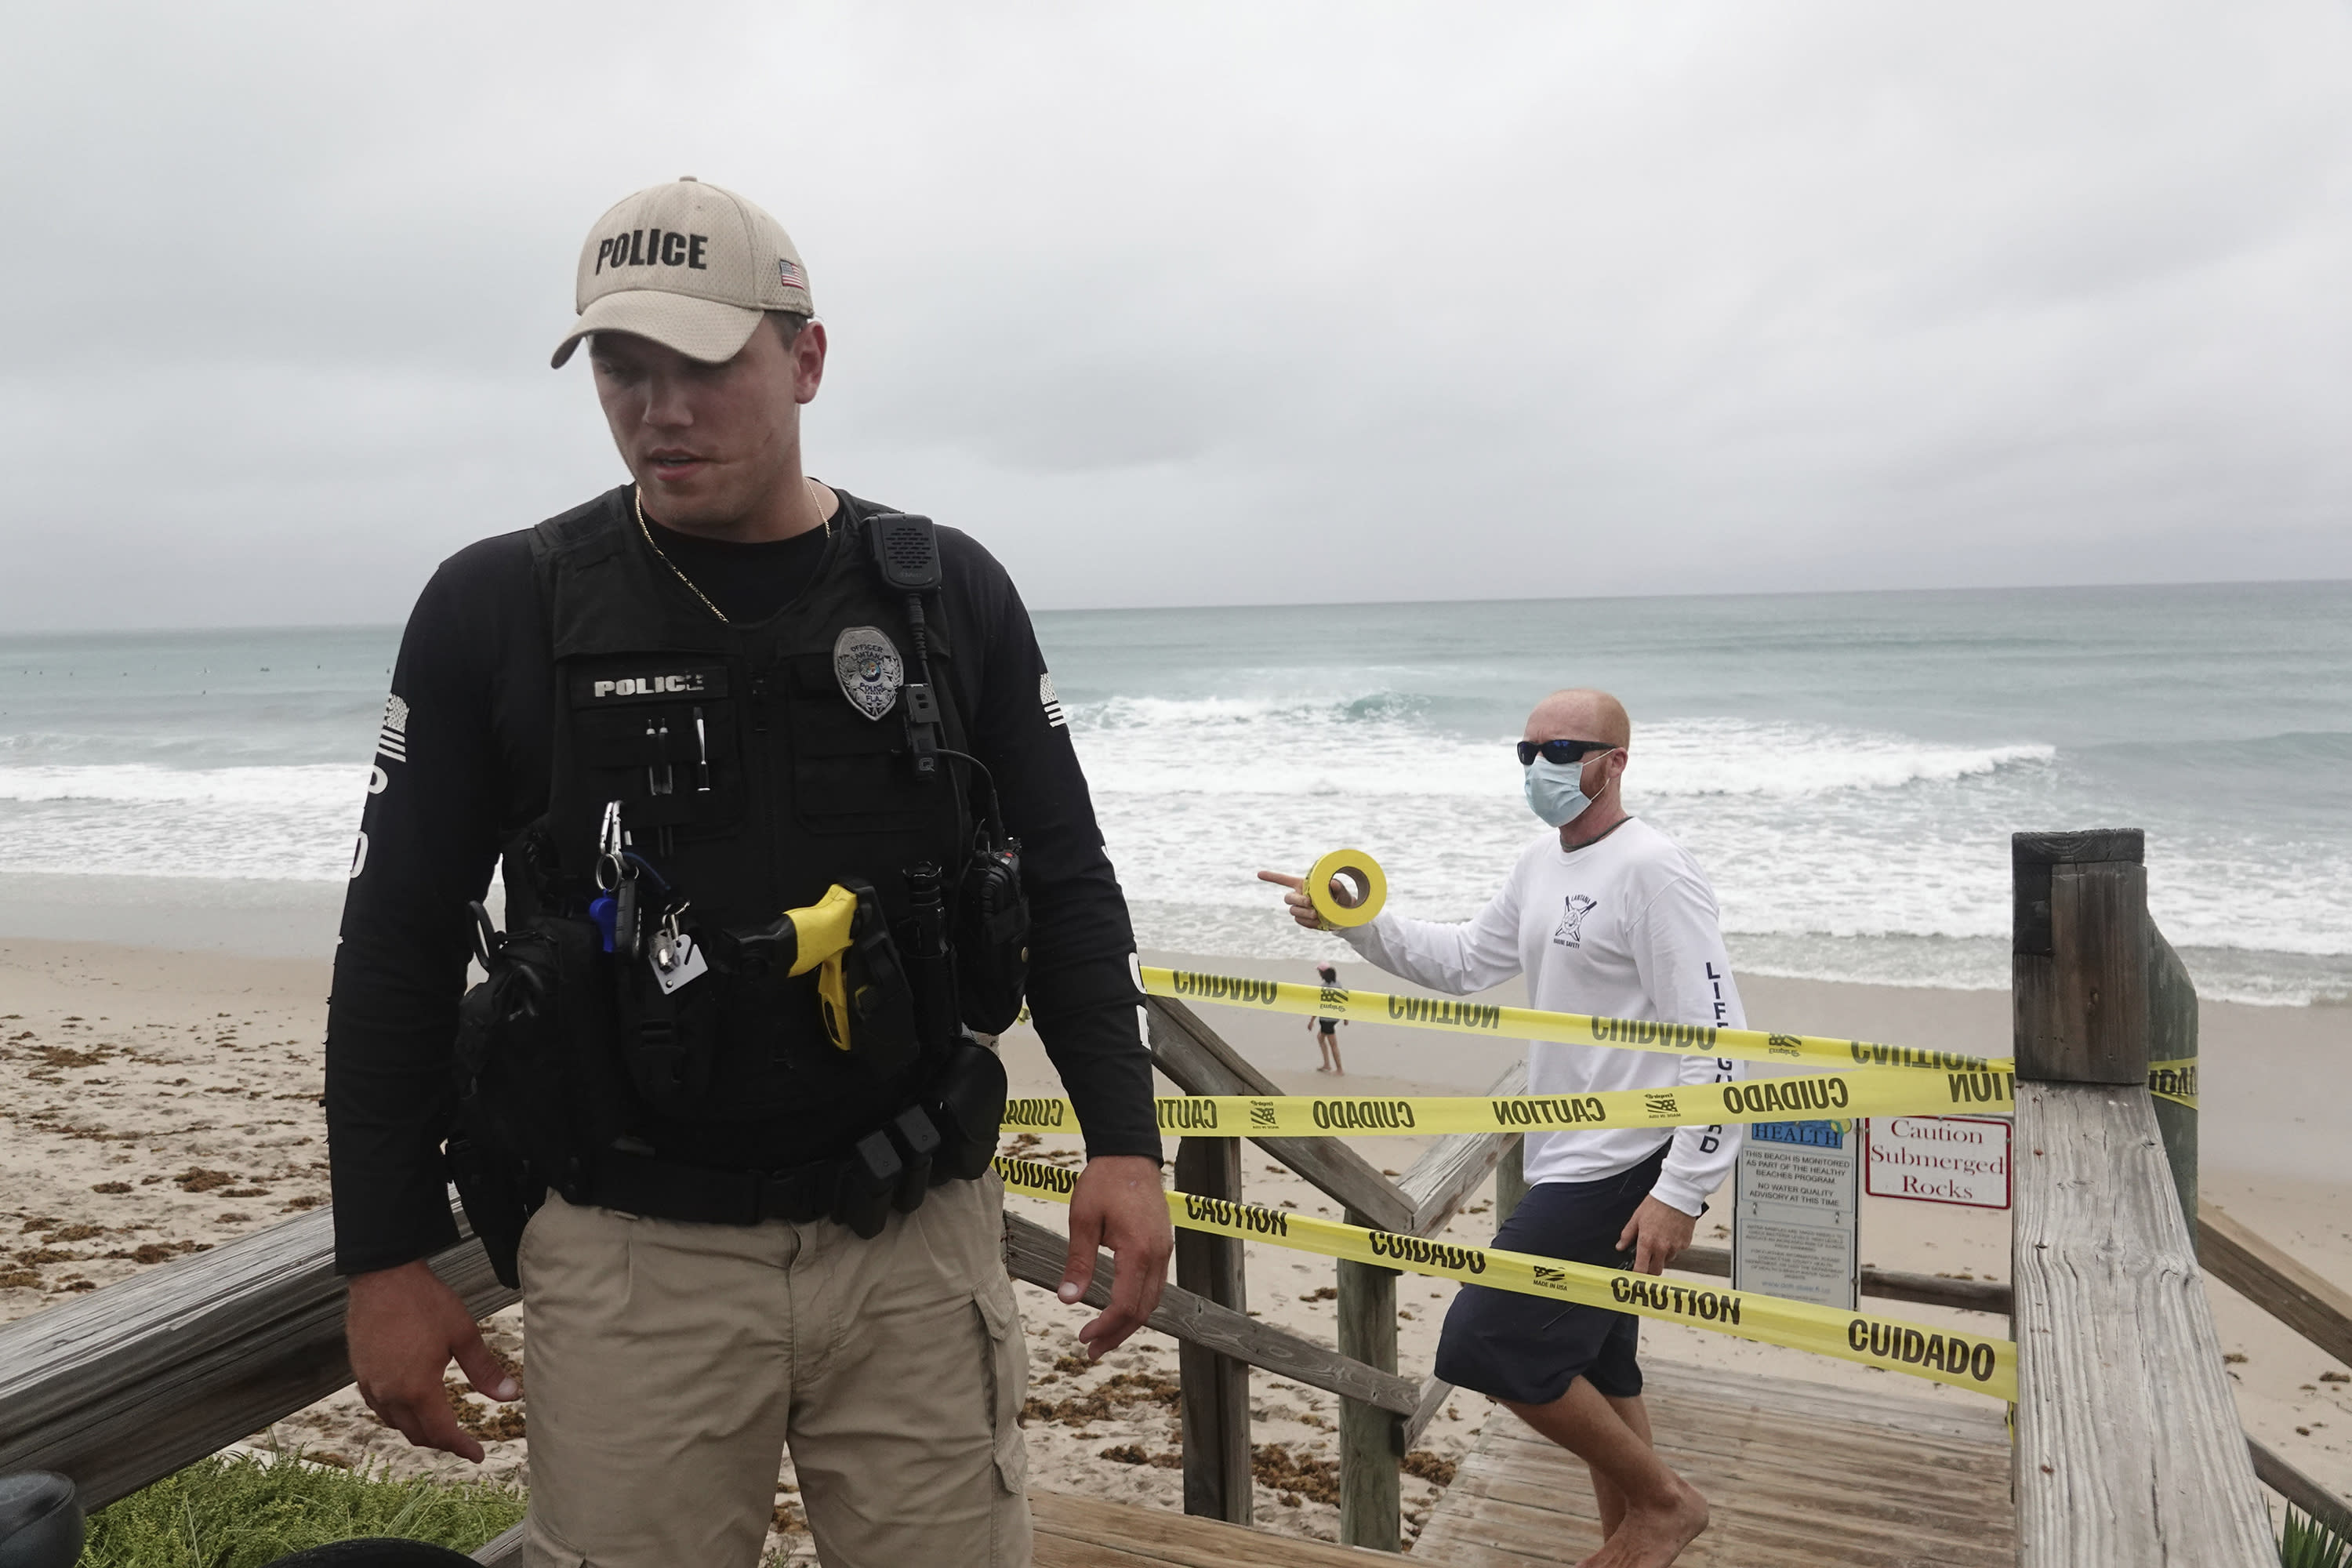 Police and lifeguards from the Town of Lantana close the beach and boardwalk, Sunday, Aug. 2, 2020, as Tropical Storm Isaias brushes past the East Coast of Florida. (Joe Cavaretta/South Florida Sun-Sentinel via AP)